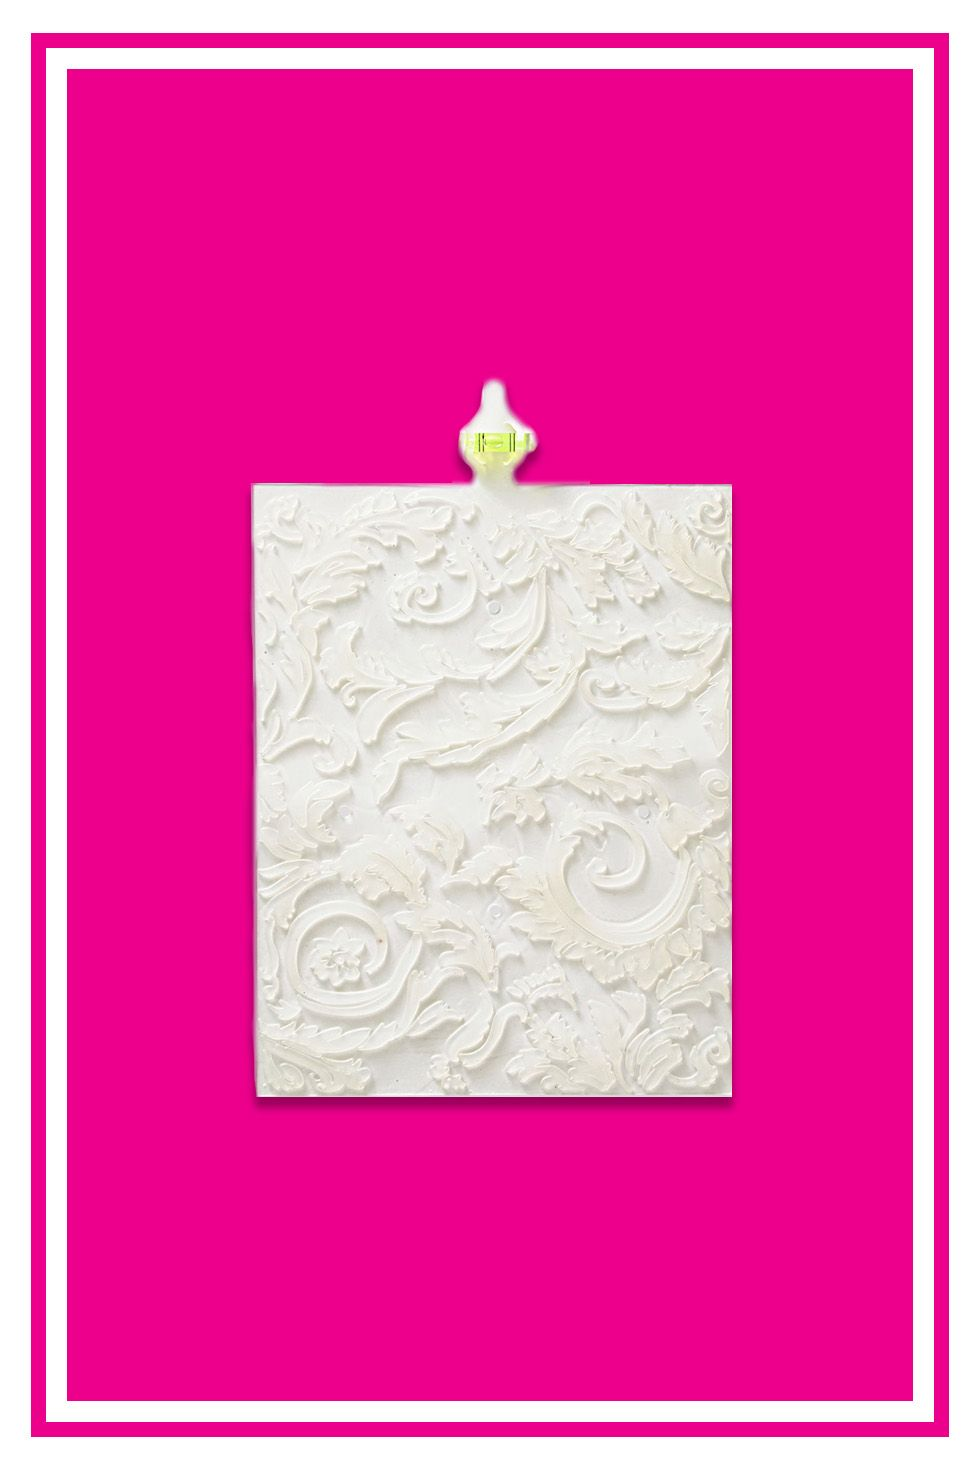 "<p>After playing with materials for 12 years, Laurie Steinfeld created The Original Wall Stamp <i data-redactor-tag=""i"">($30-$35, <a href=""http://originalwallstamp.com/shop/"">originalwallstamp.com</a>)</i>, a flexible, translucent rubber tool with a built-in level for seamless stamping.</p><p>Our panelists loved how easy it was: Pick one of six designs, glide paint on the back and stamp. Laurie says that with practice you can transform a room in less than two hours for a fraction of the cost of wallpapering.</p>"